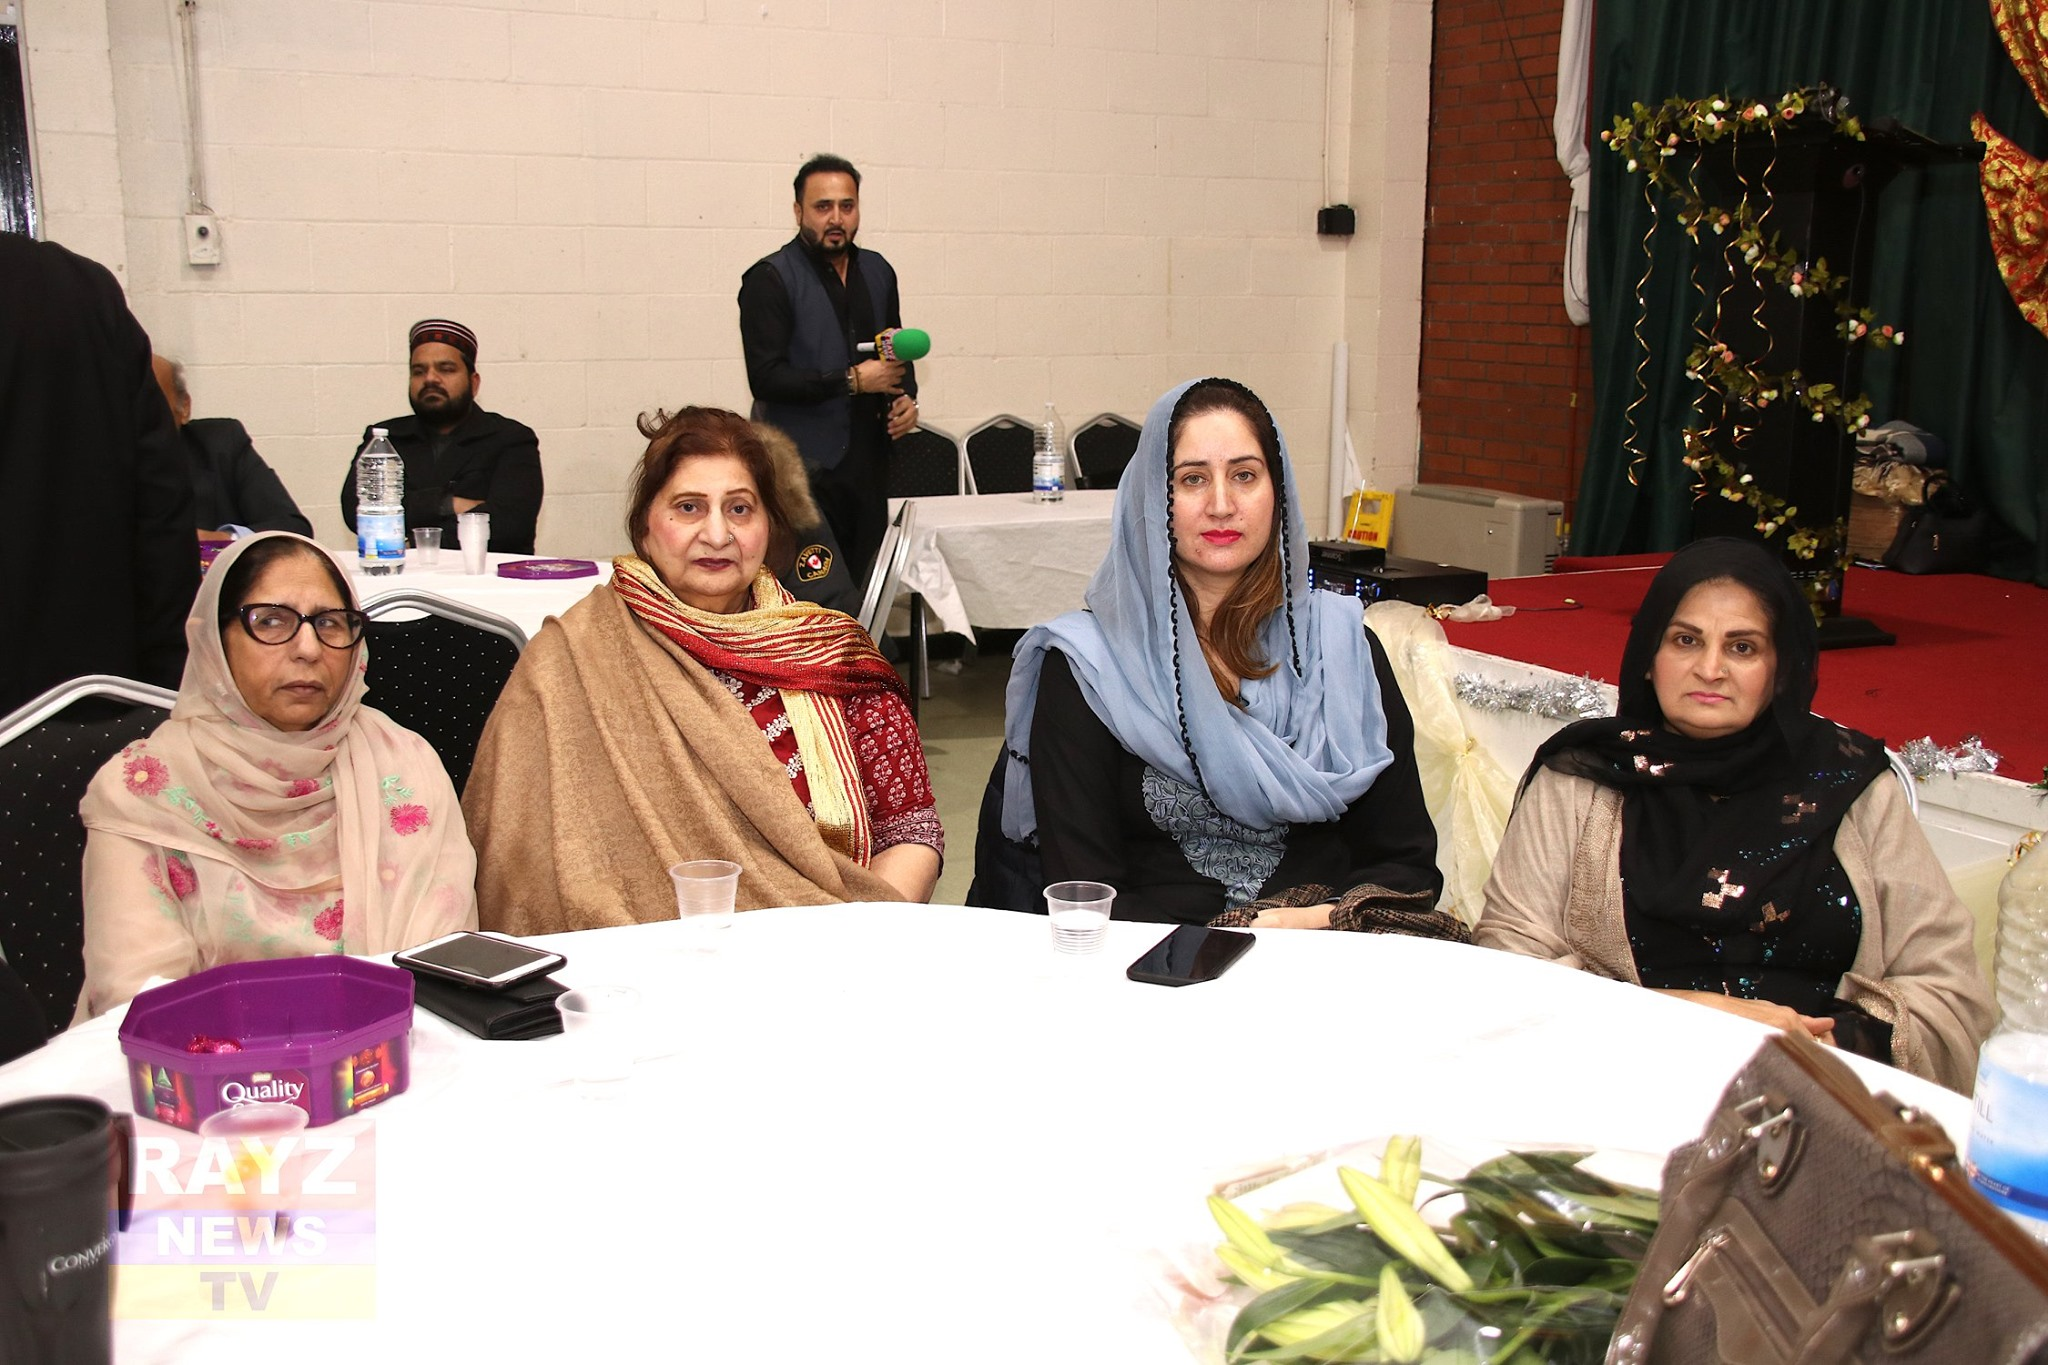 GLOWING STARS MAHAFIL MILAD IN MANCHESTER